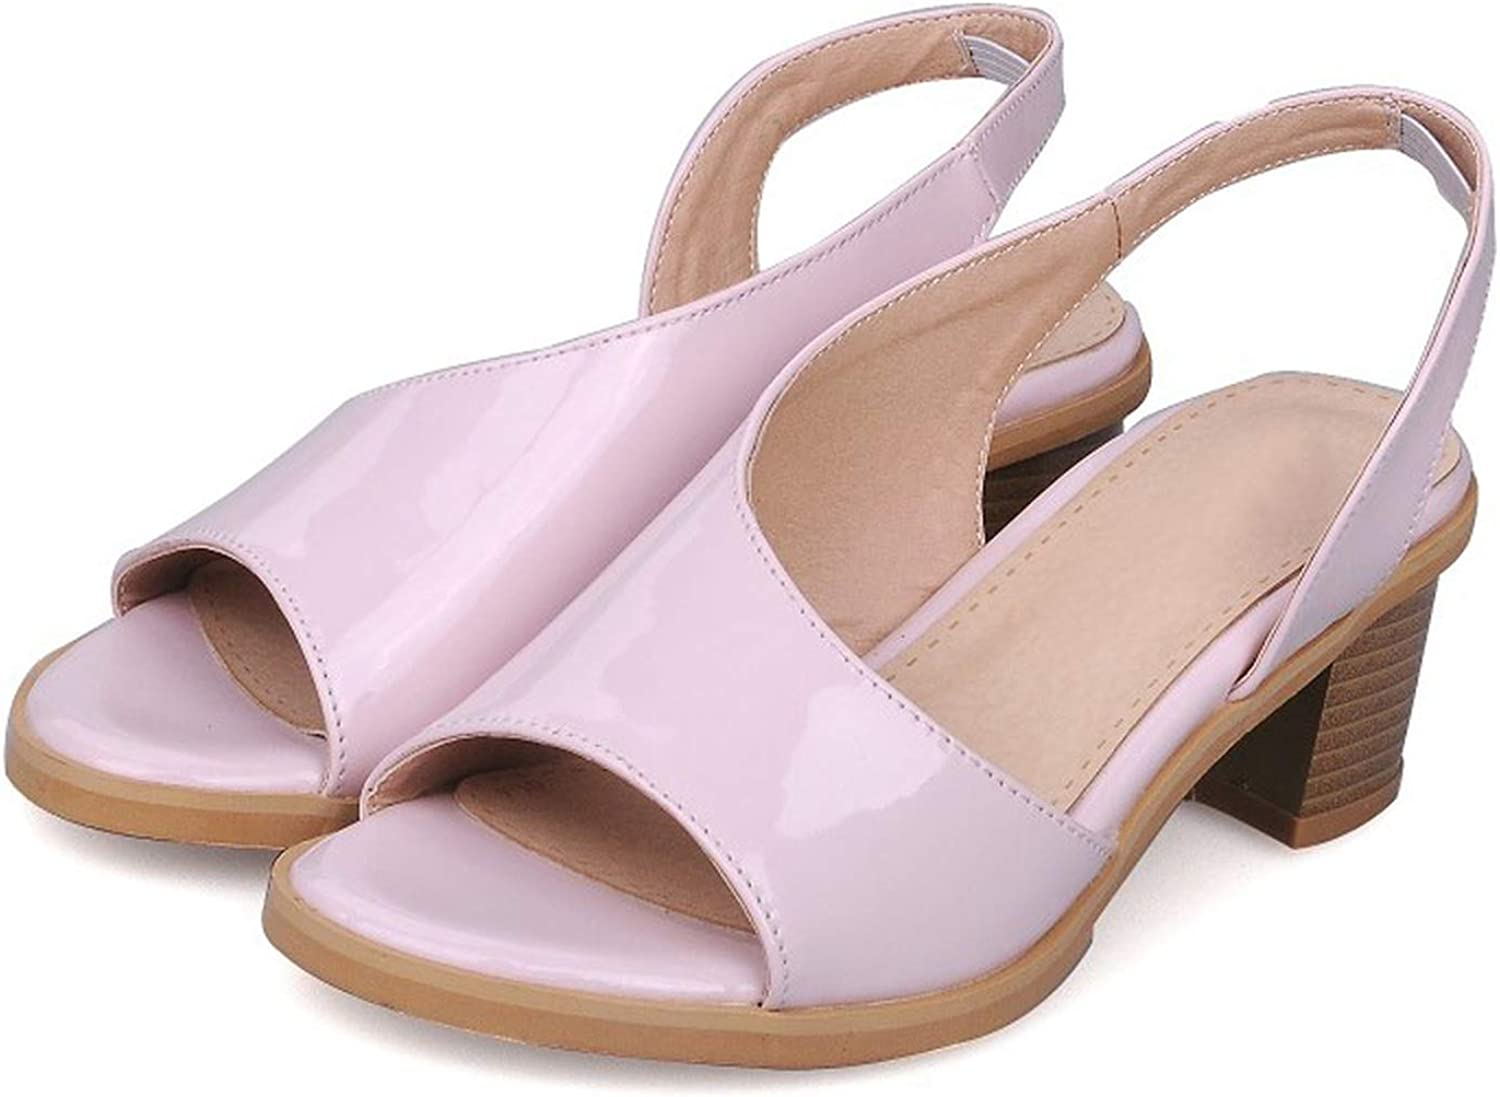 Women's Sandals Summer Fashion Slip-On Fish Mouth Open Toe Thick Heel mid Heel Women's shoes